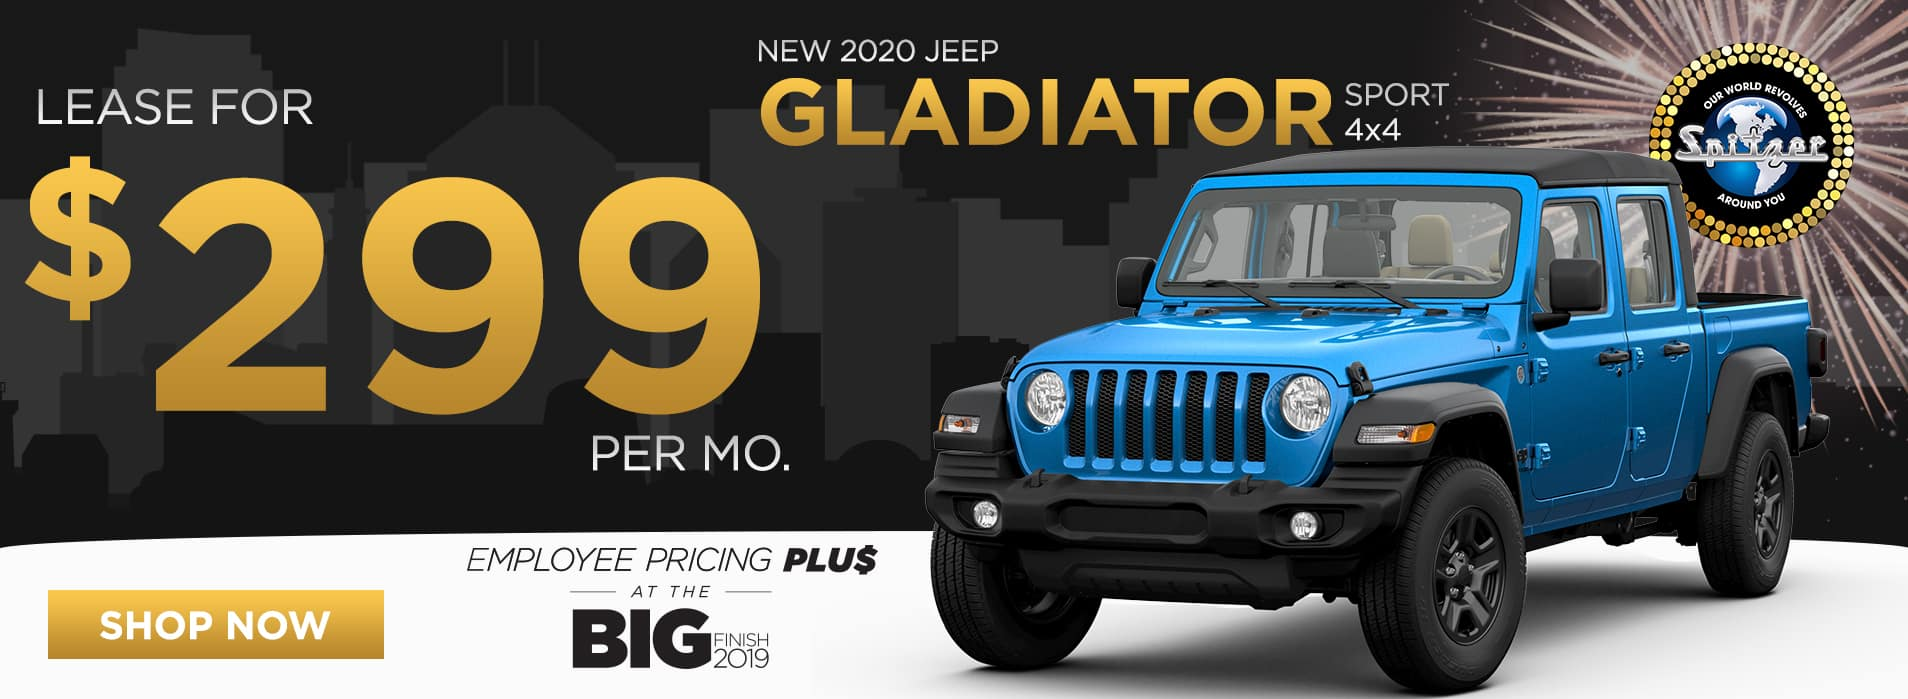 Gladiator | Lease for $299 per mo